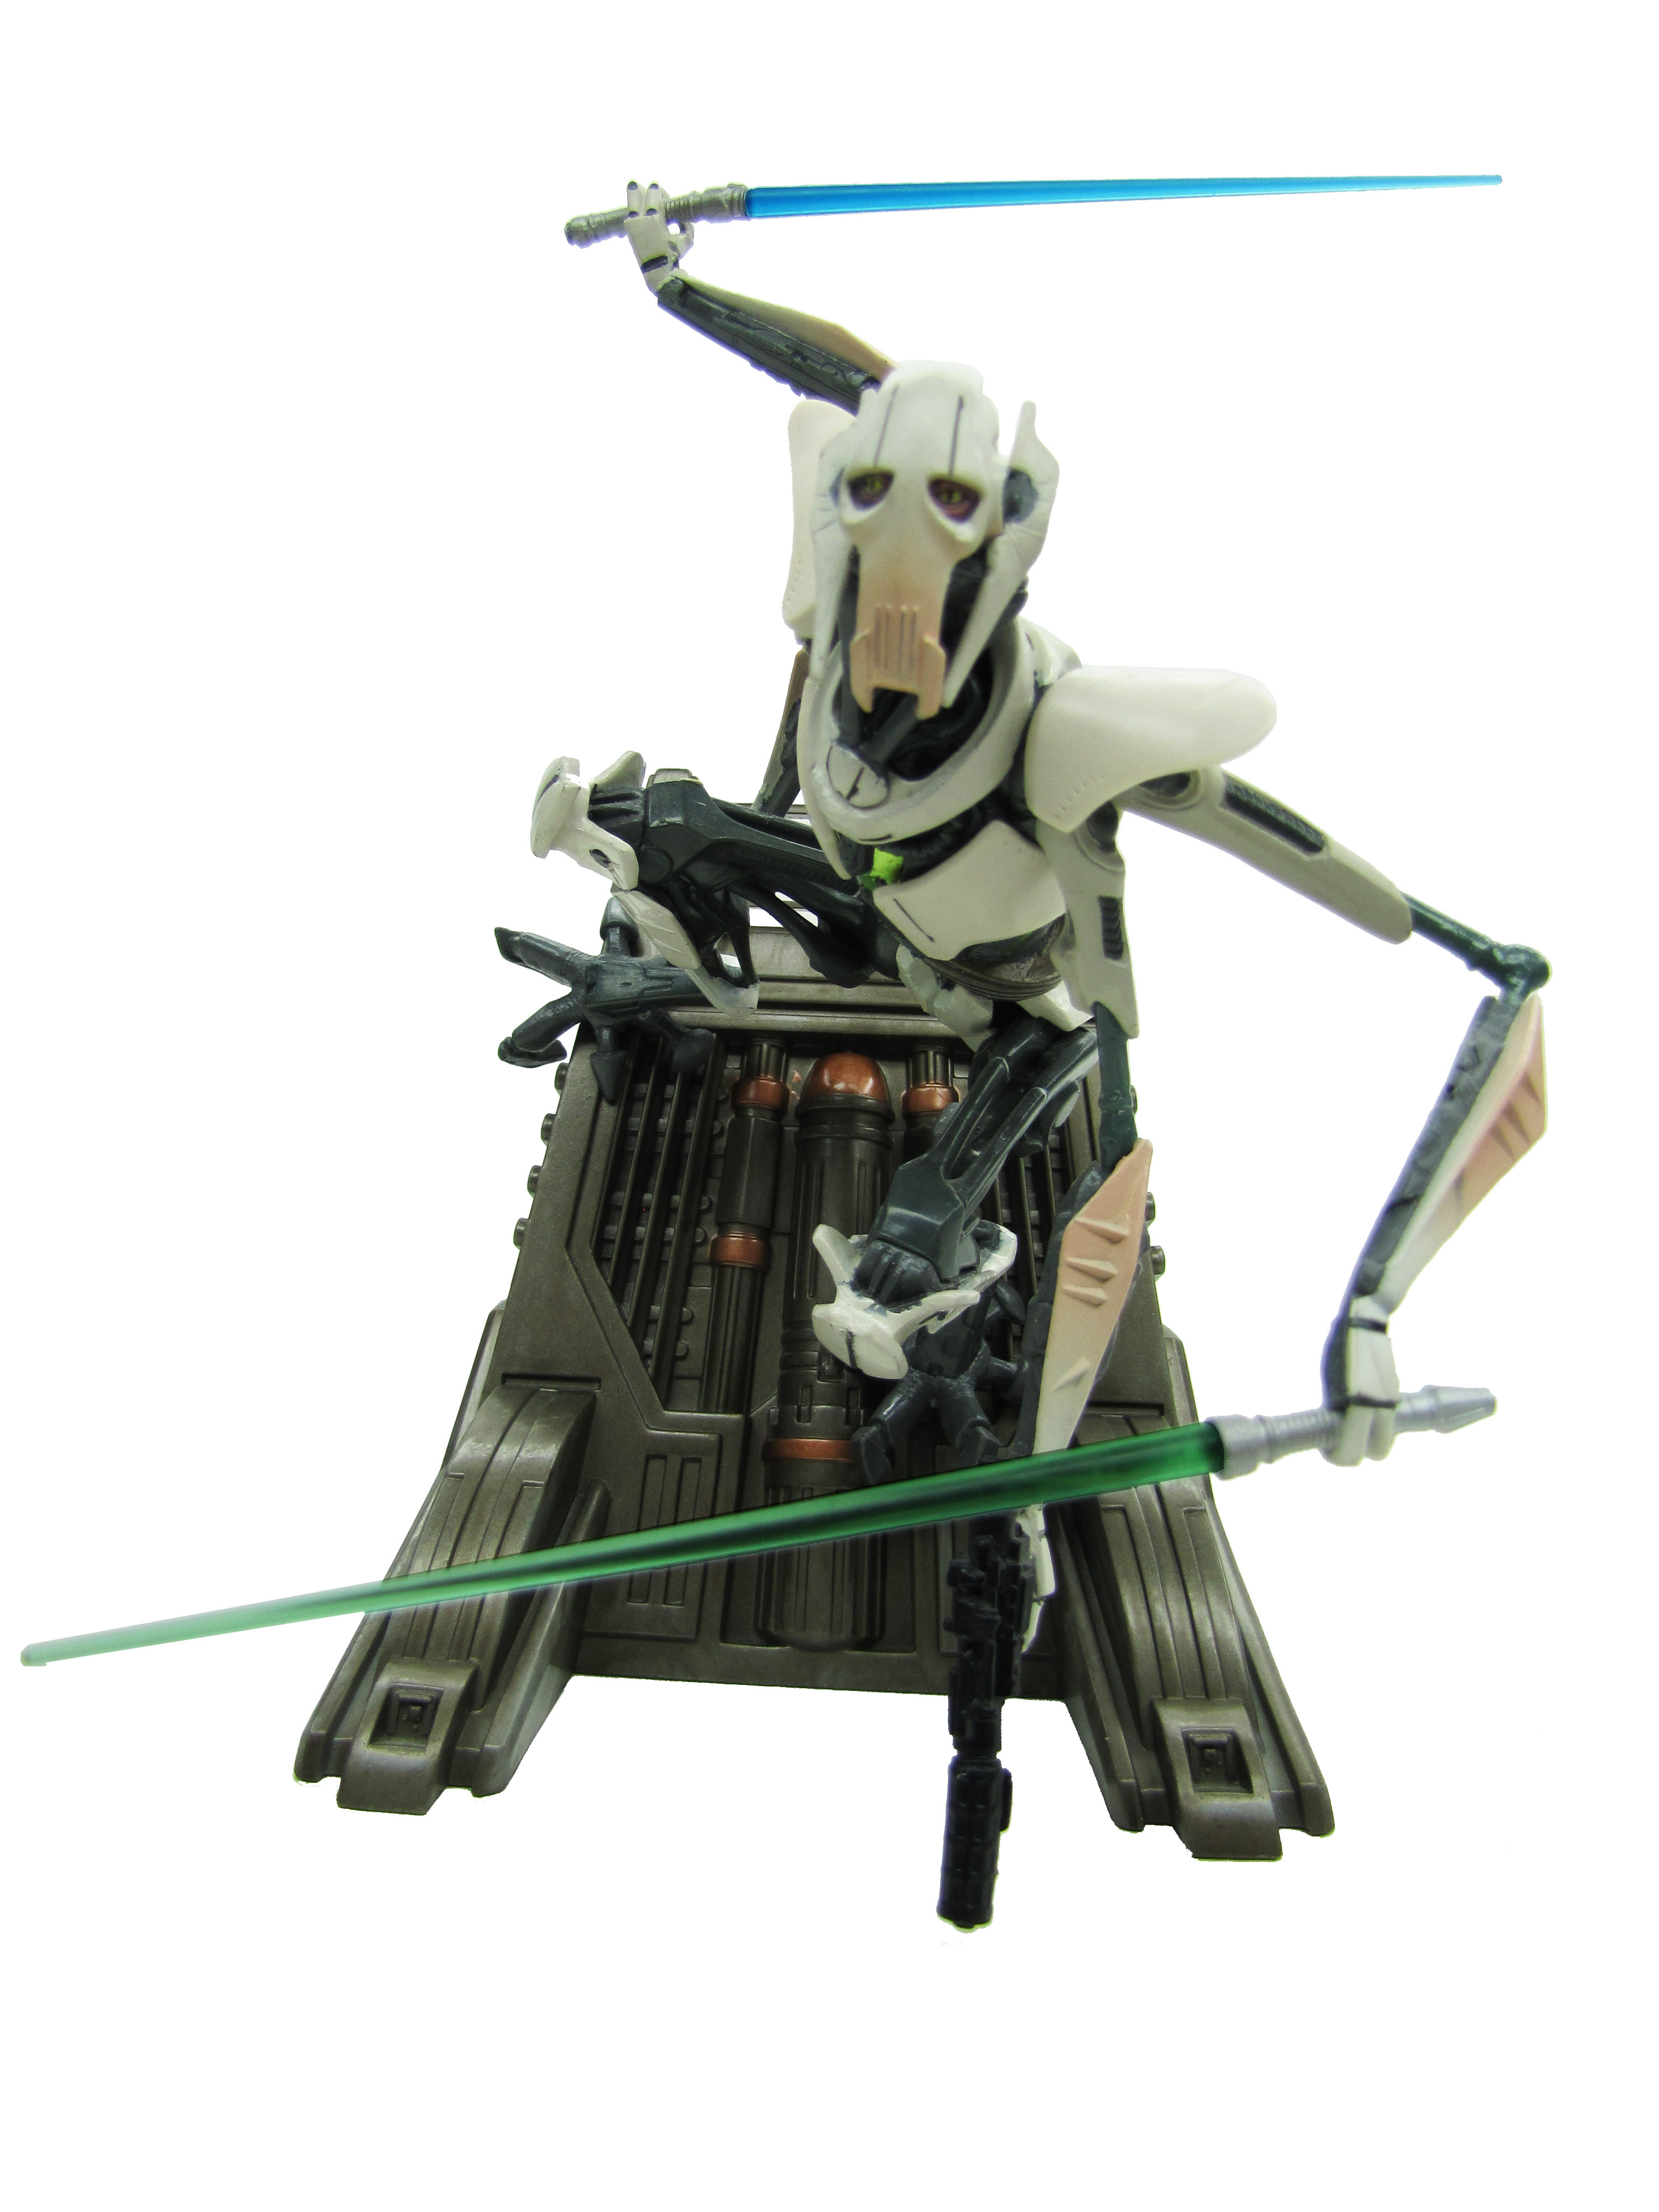 2005 Star Wars Unleashed GENERAL GRIEVOUS Complete